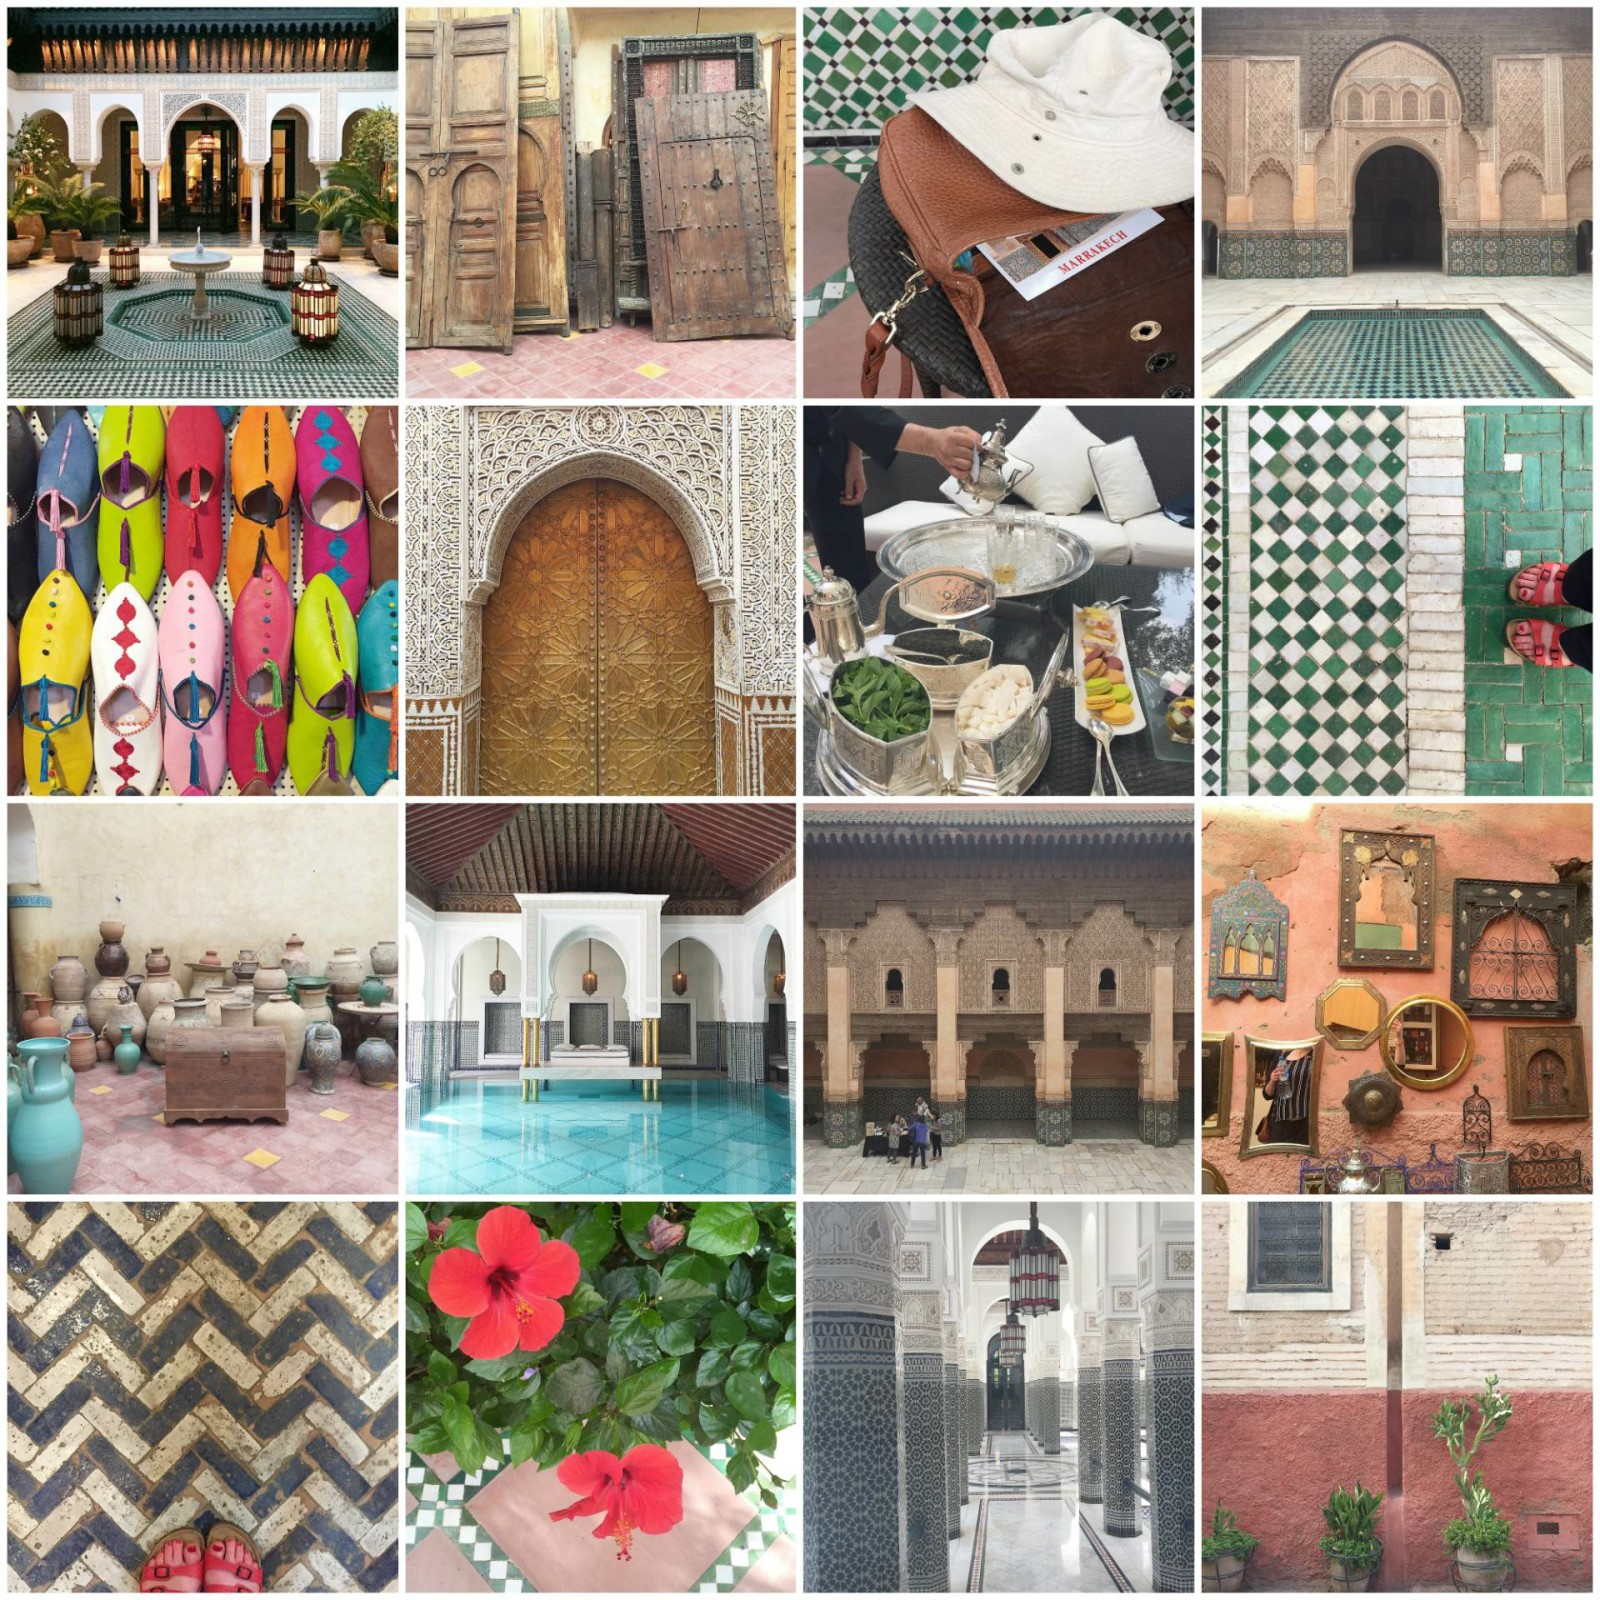 Where-Did-the-Wind-Blow-Me-and-a-few-other-reflections-My-2015-Review-Marrakech